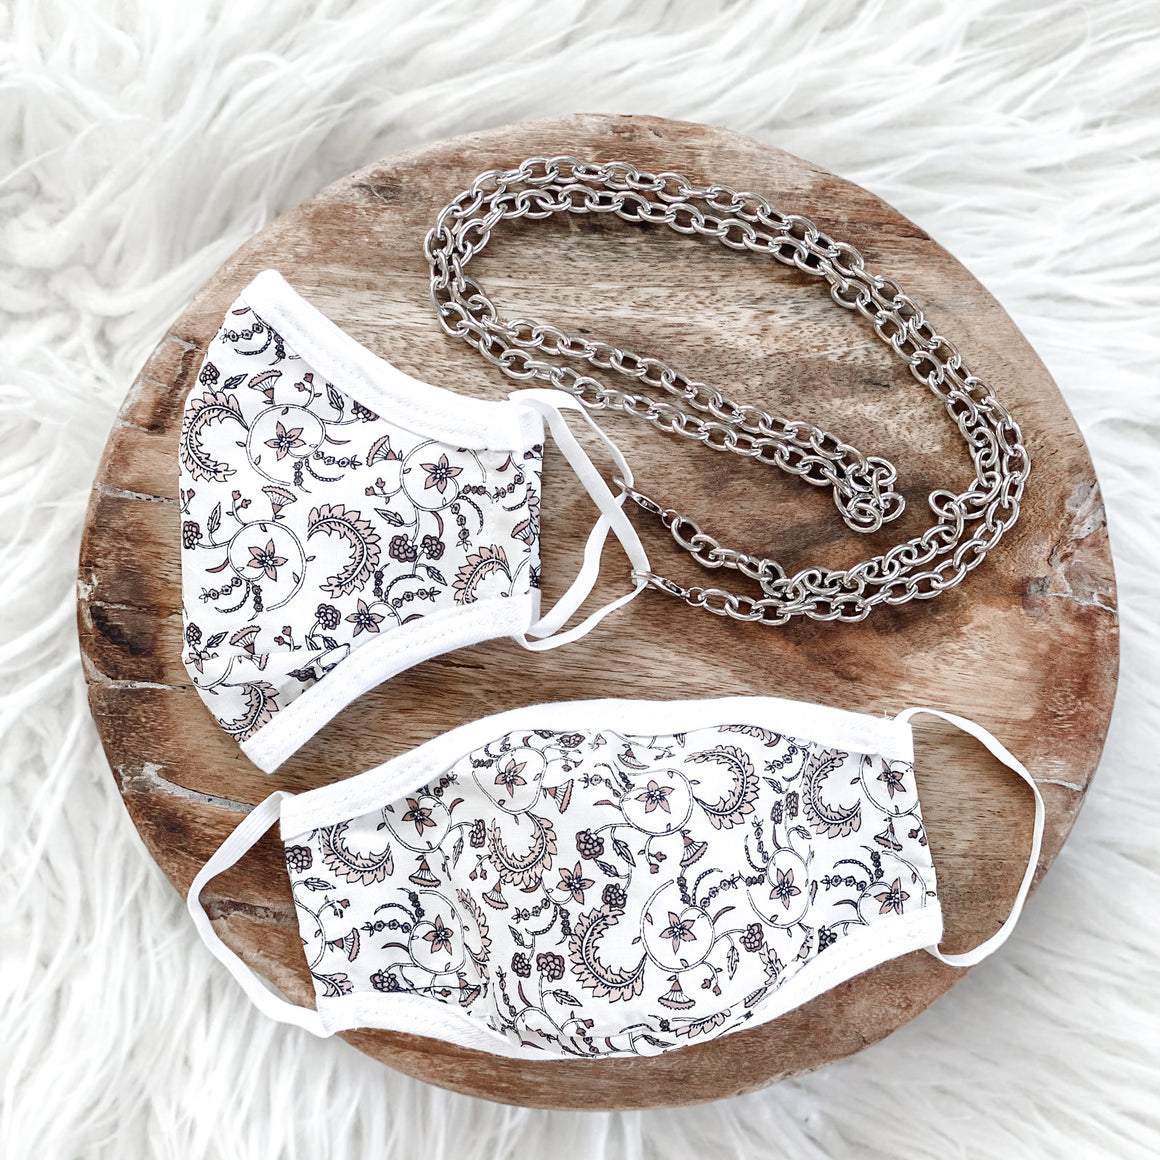 NEW! (TWO PACK + body chain) DELICATE PAISLEY 100% COTTON & ANTIMICROBIAL-REUSABLE MASK WITH BODY CHAIN